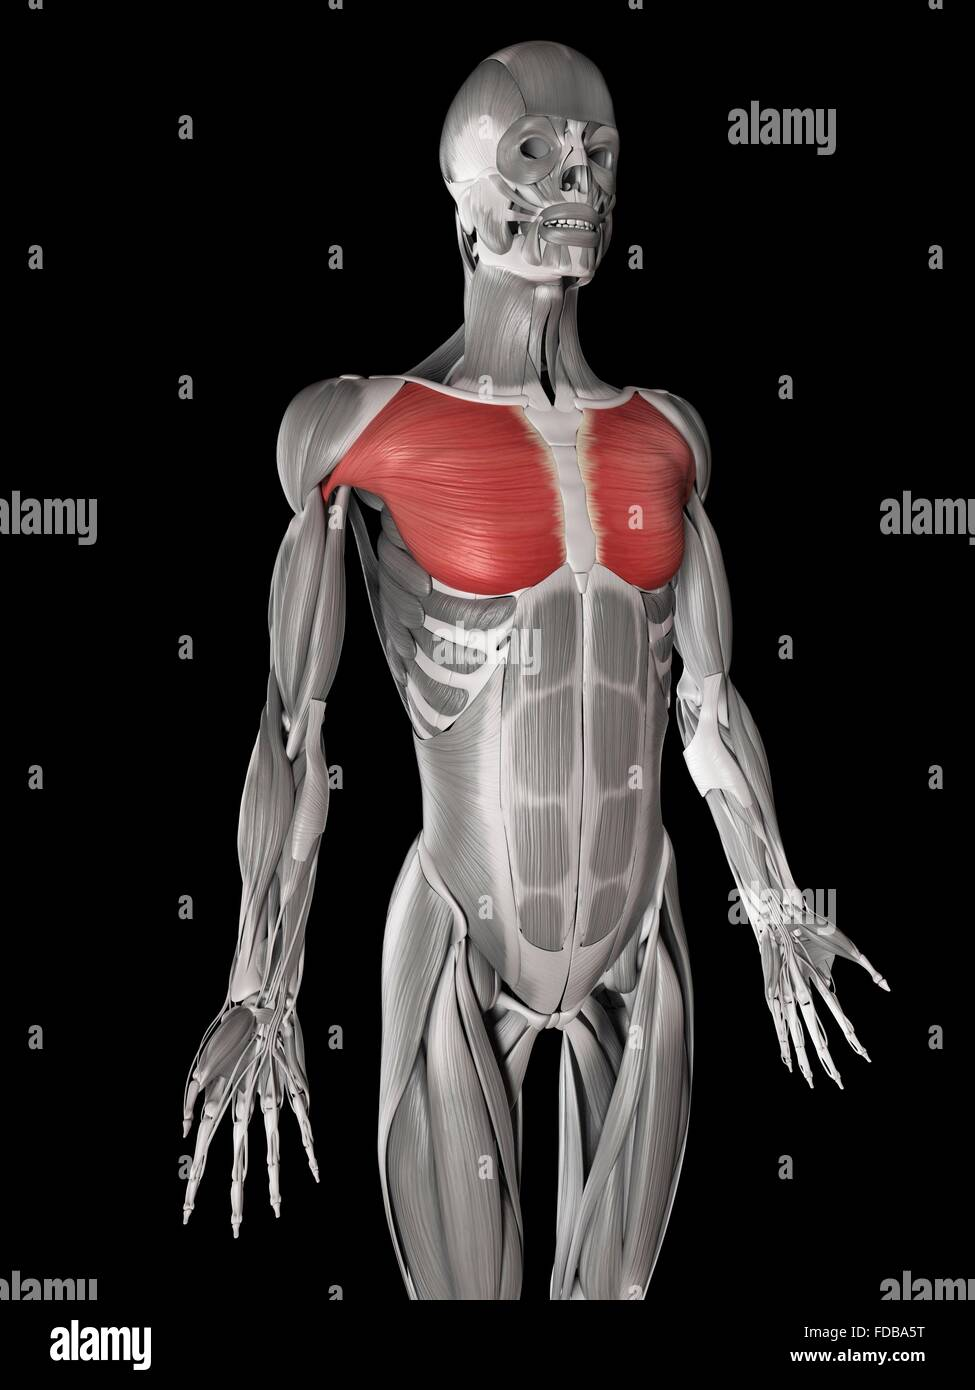 Human Chest Muscles Pectoralis Major Illustration Stock Photo